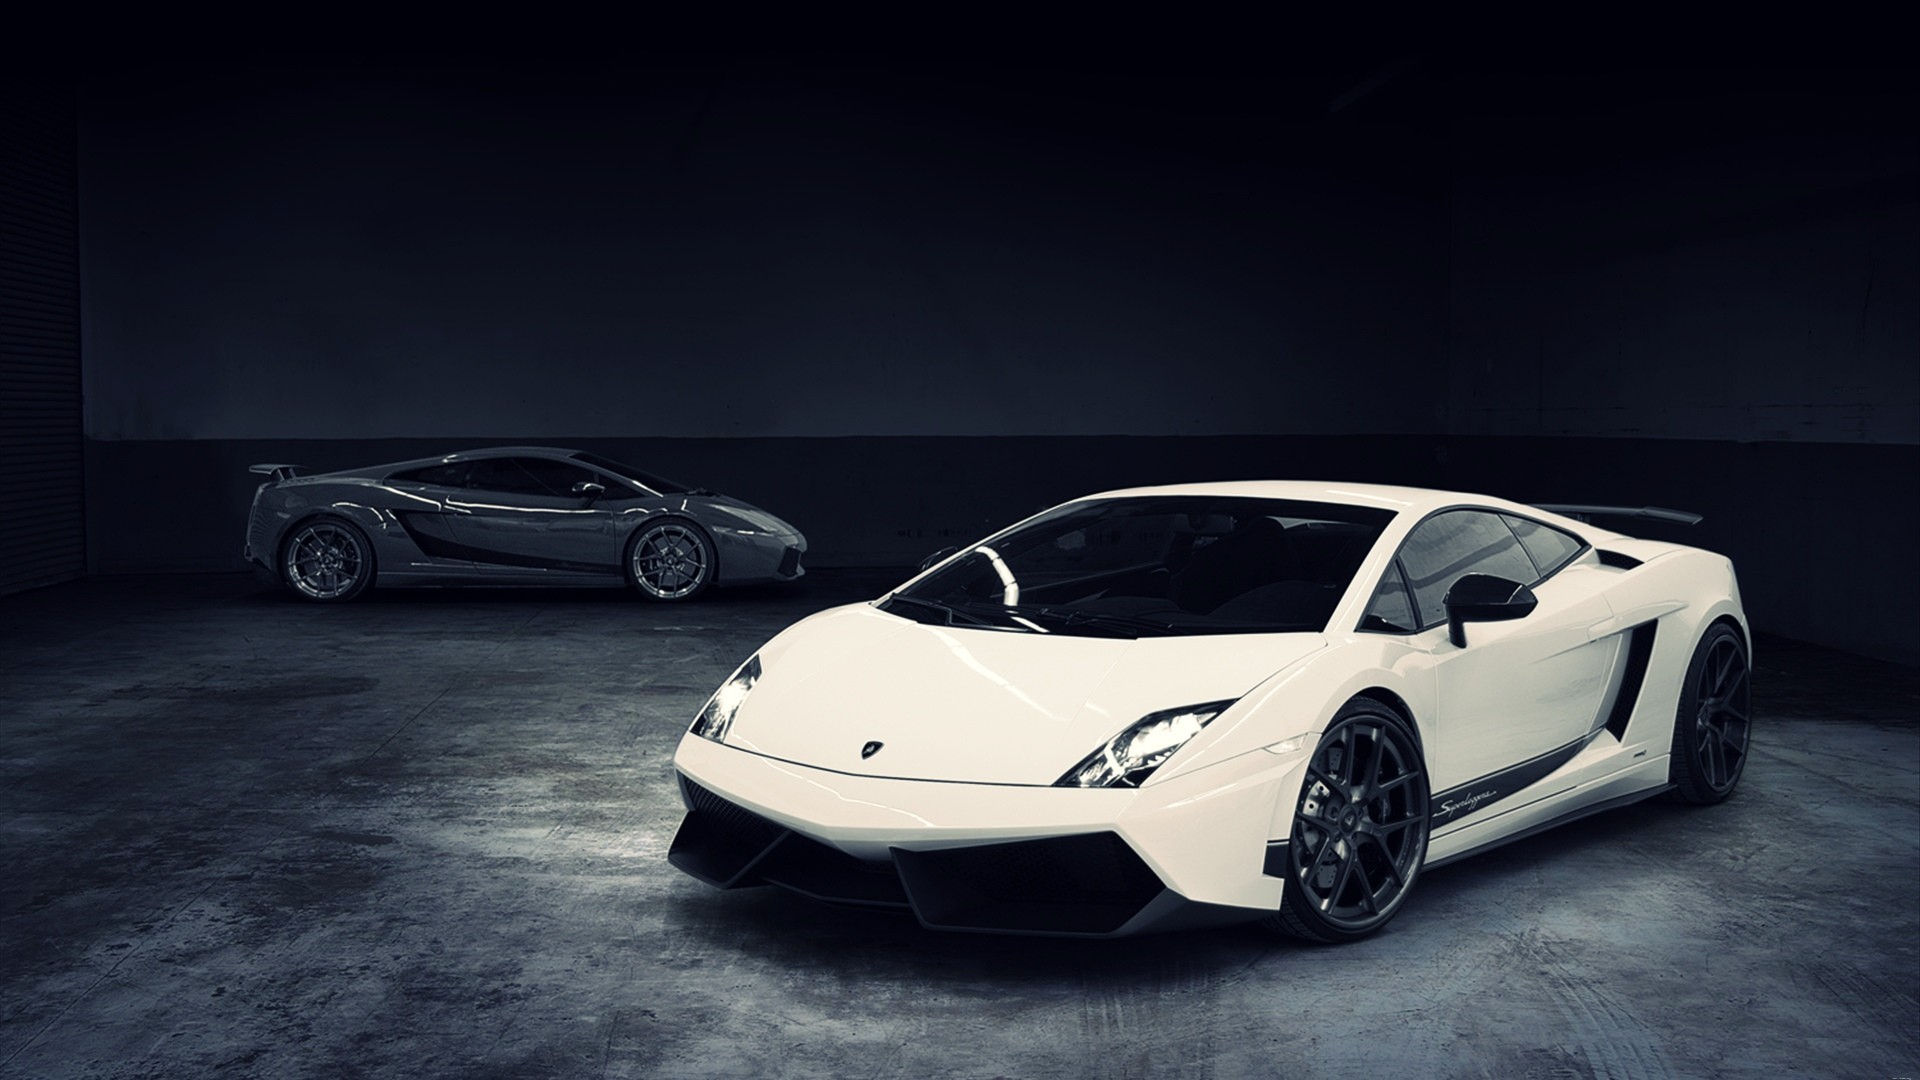 Cars Lamborghini Gallardo Lp570 4 Wallpaper